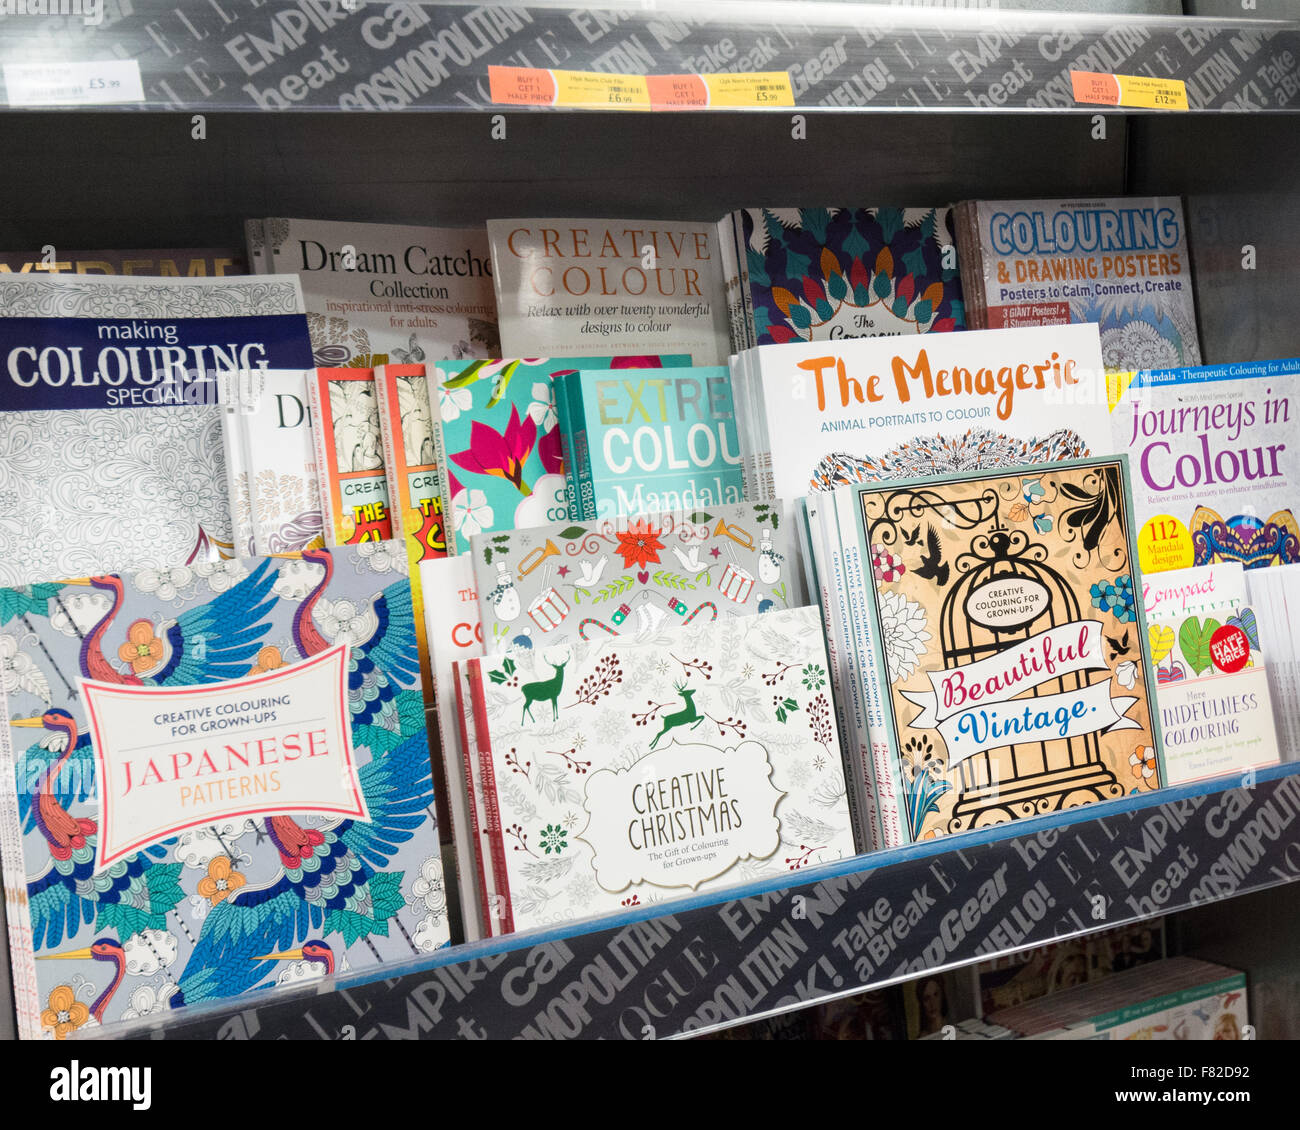 adult colouring coloring books on sale in wh smith edinburgh waverley station edinburgh scotland uk - Coloring Book Paper Stock